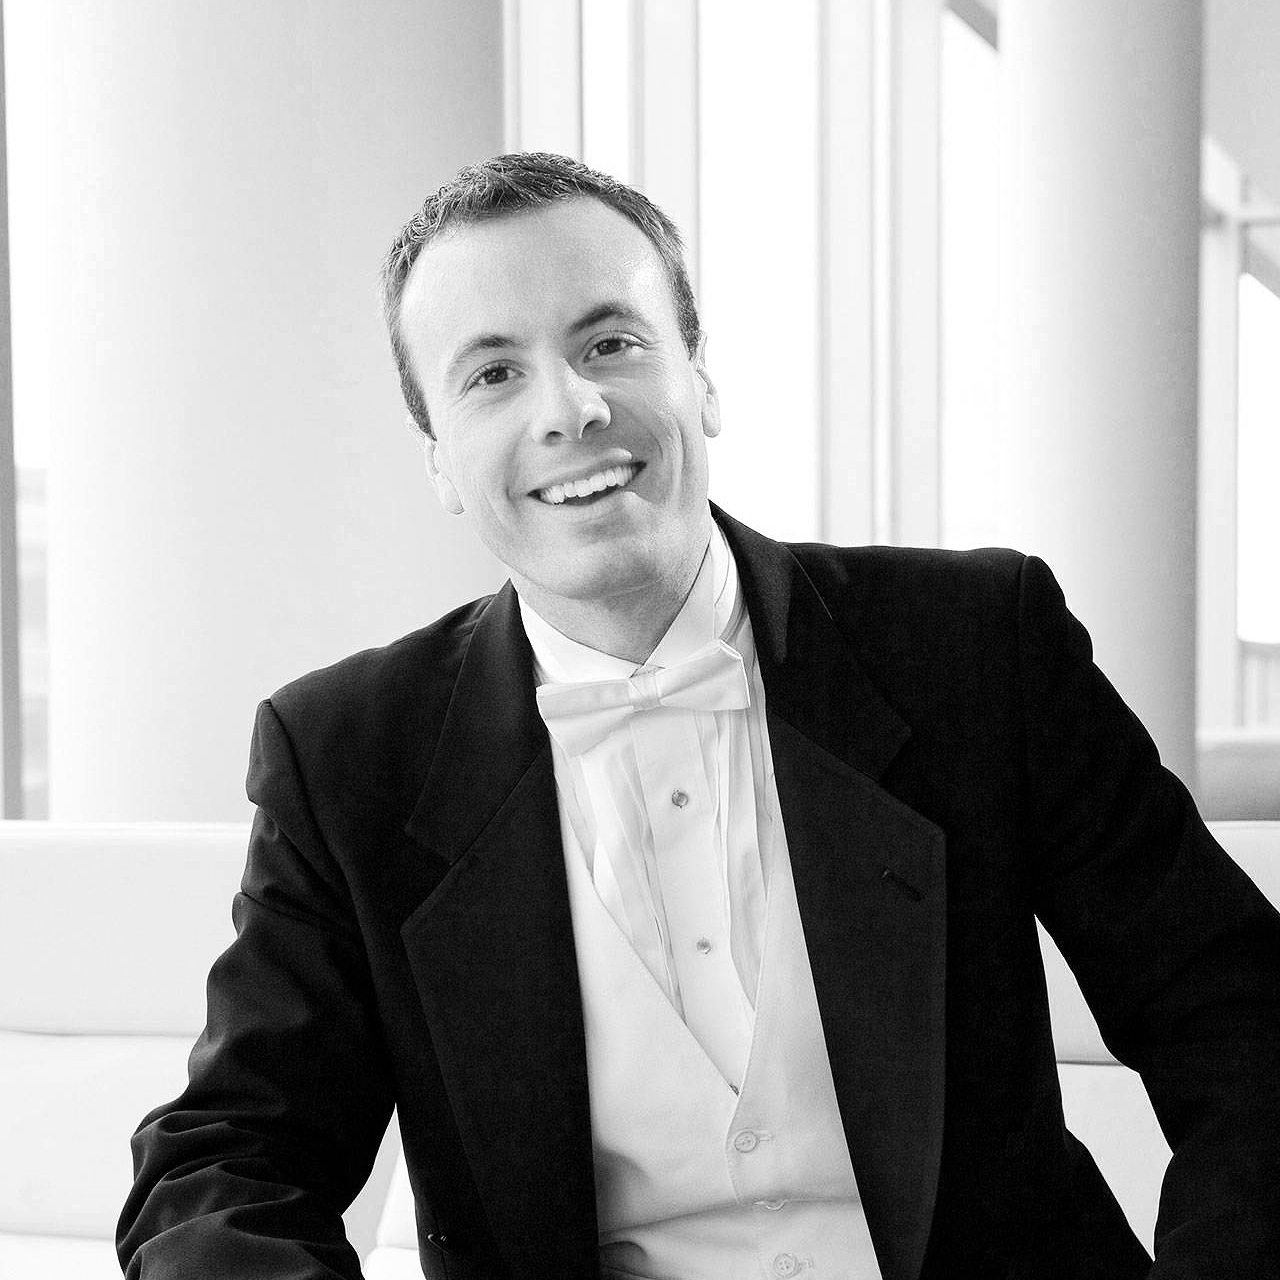 Announcing Wesley Schulz as new Music Director - Auburn Reporter // 2.22.18It took the Auburn Symphony Orchestra 2½ years to find and land their new music director, but it was time well spent, they say.